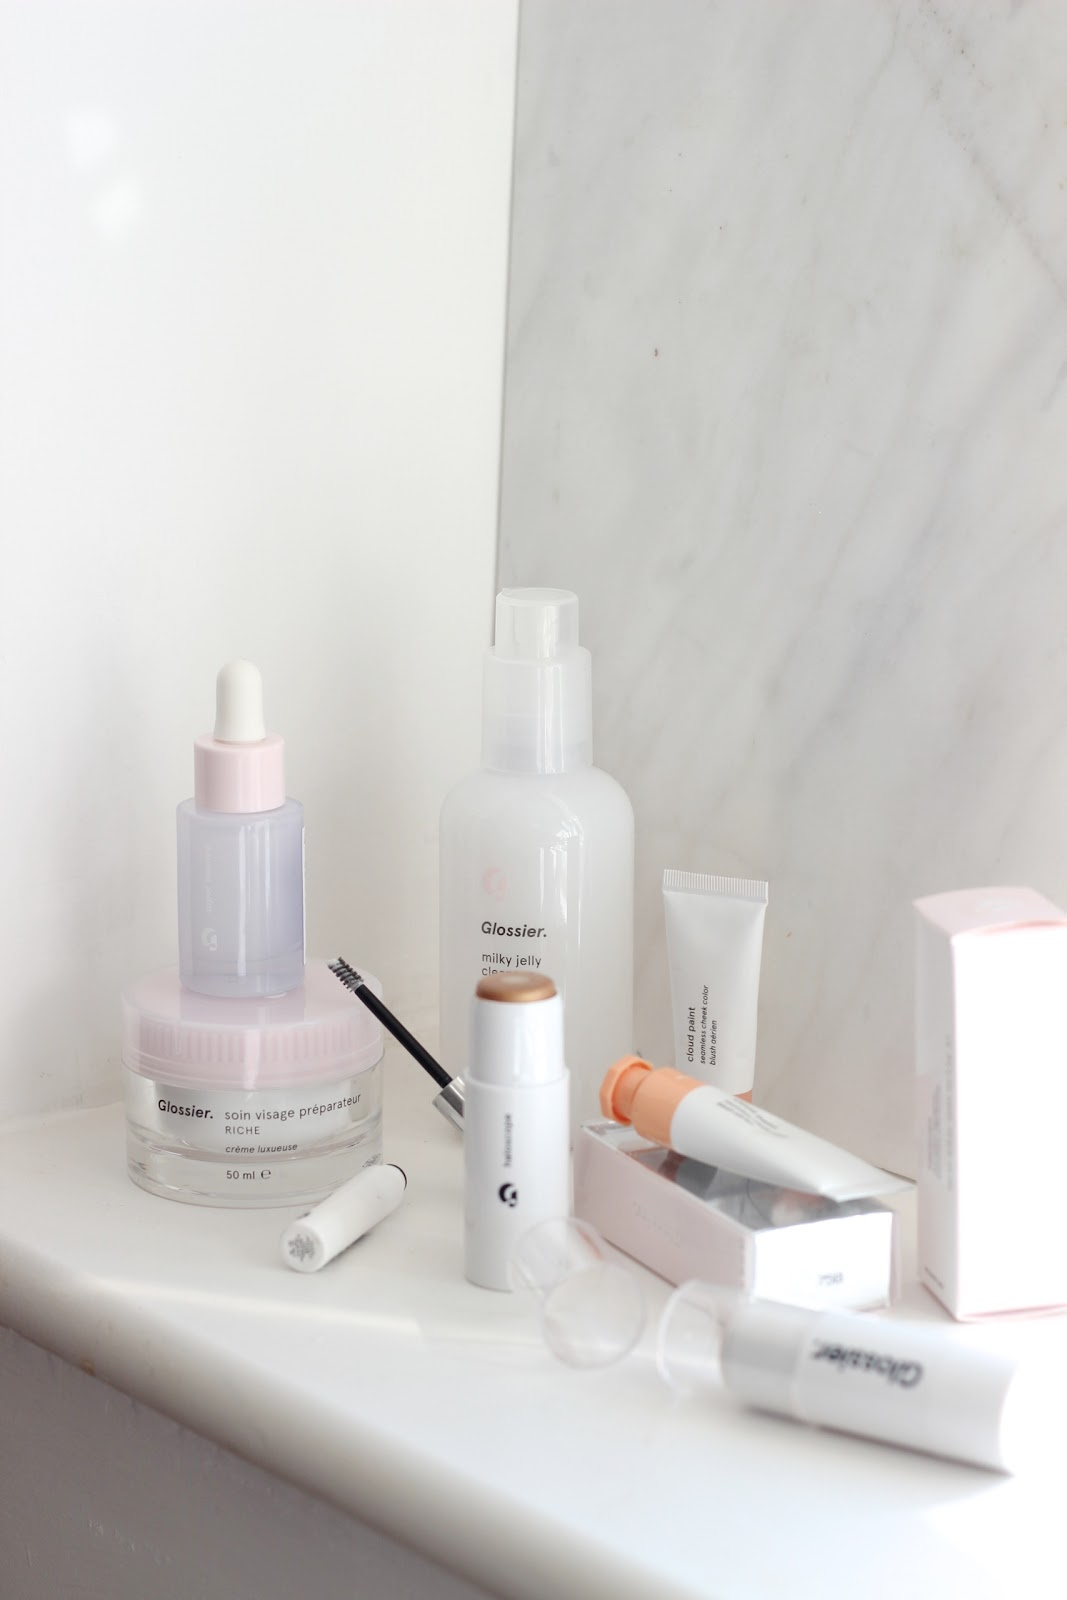 Glossier First Impressions.